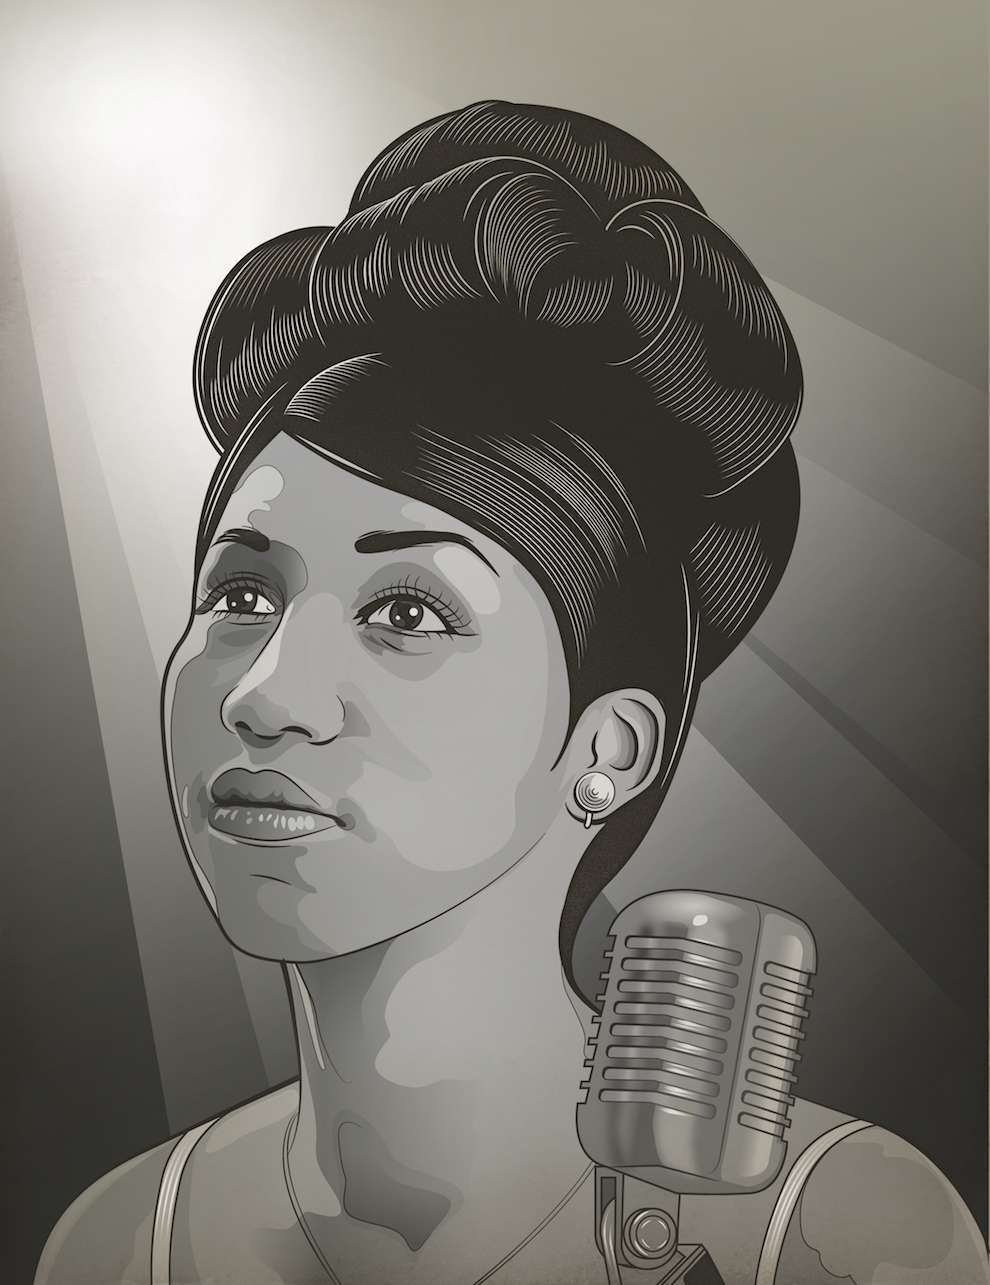 Susan Burghart, Black and white bold digital portrait of Aretha Franklin